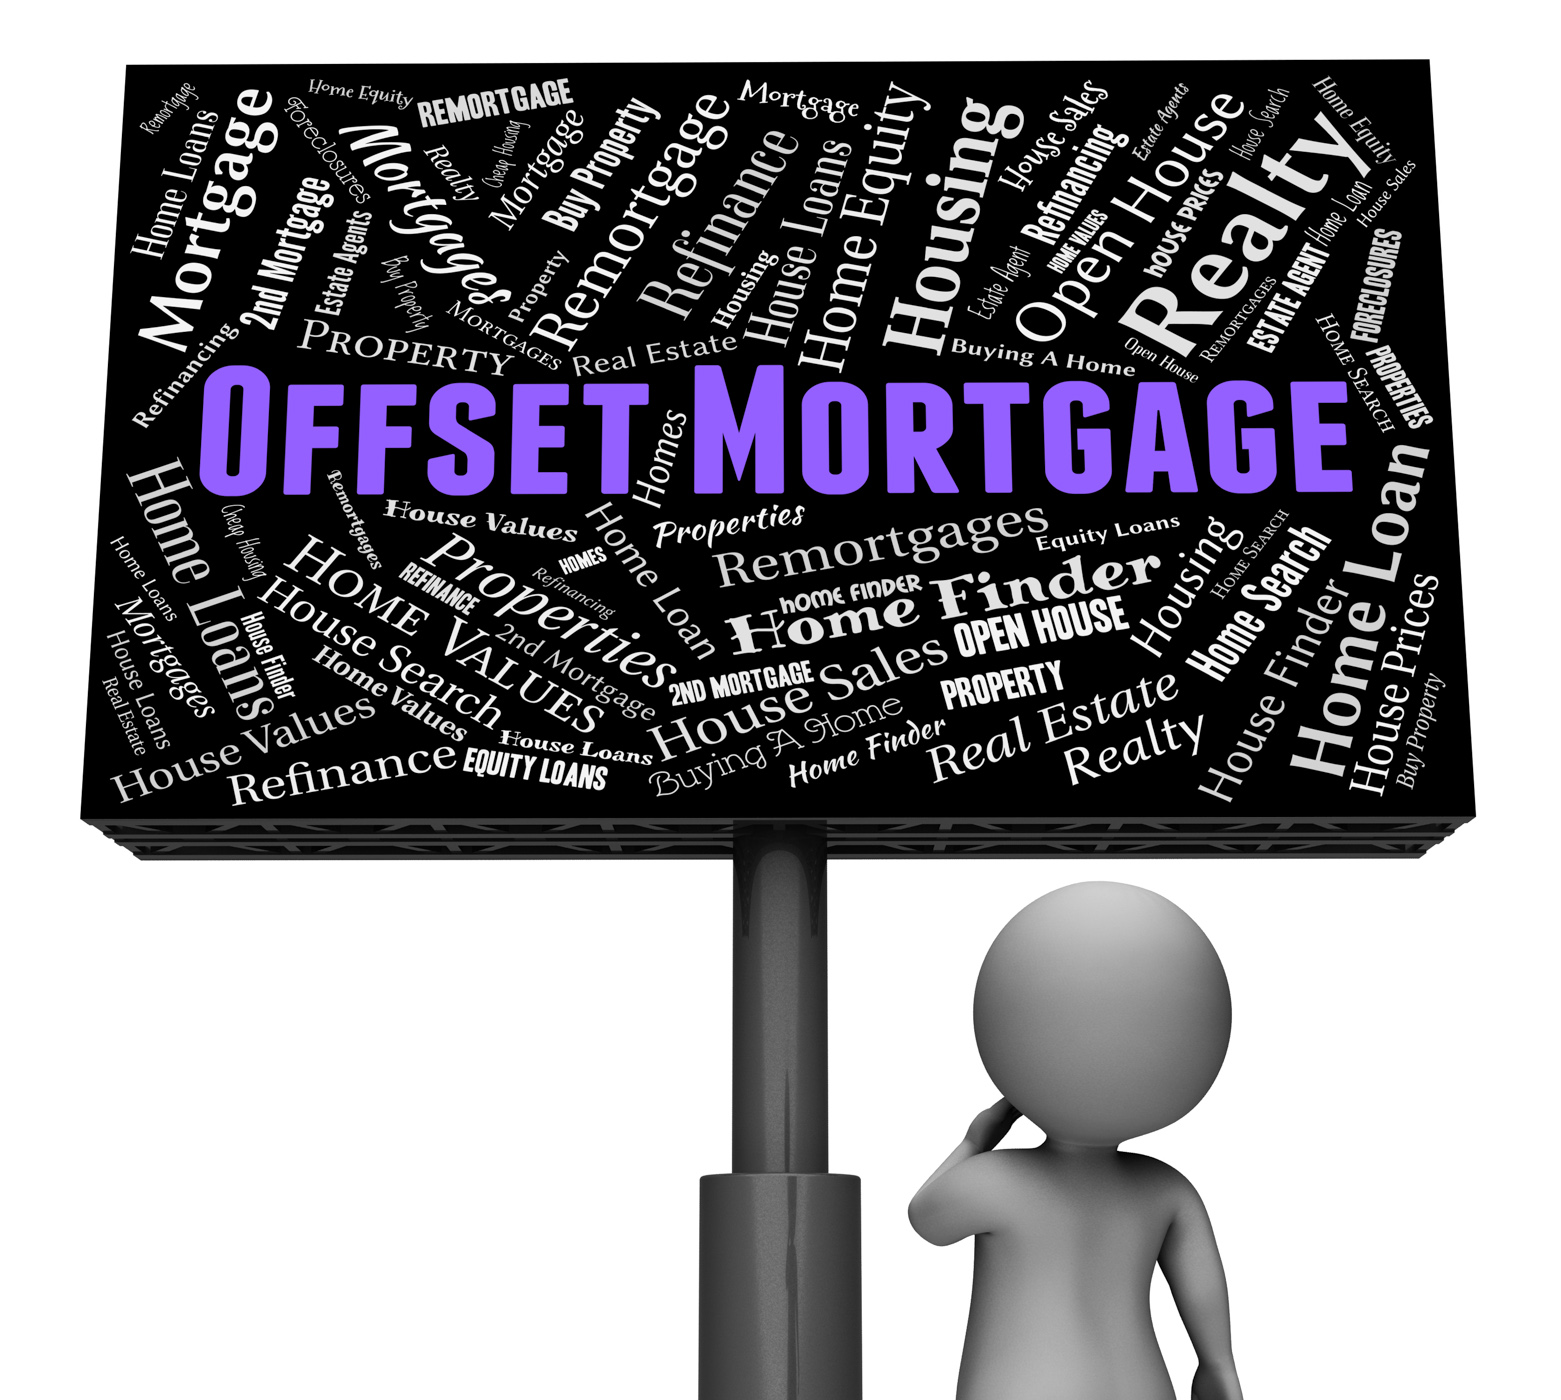 Offset mortgage represents home loan and board photo